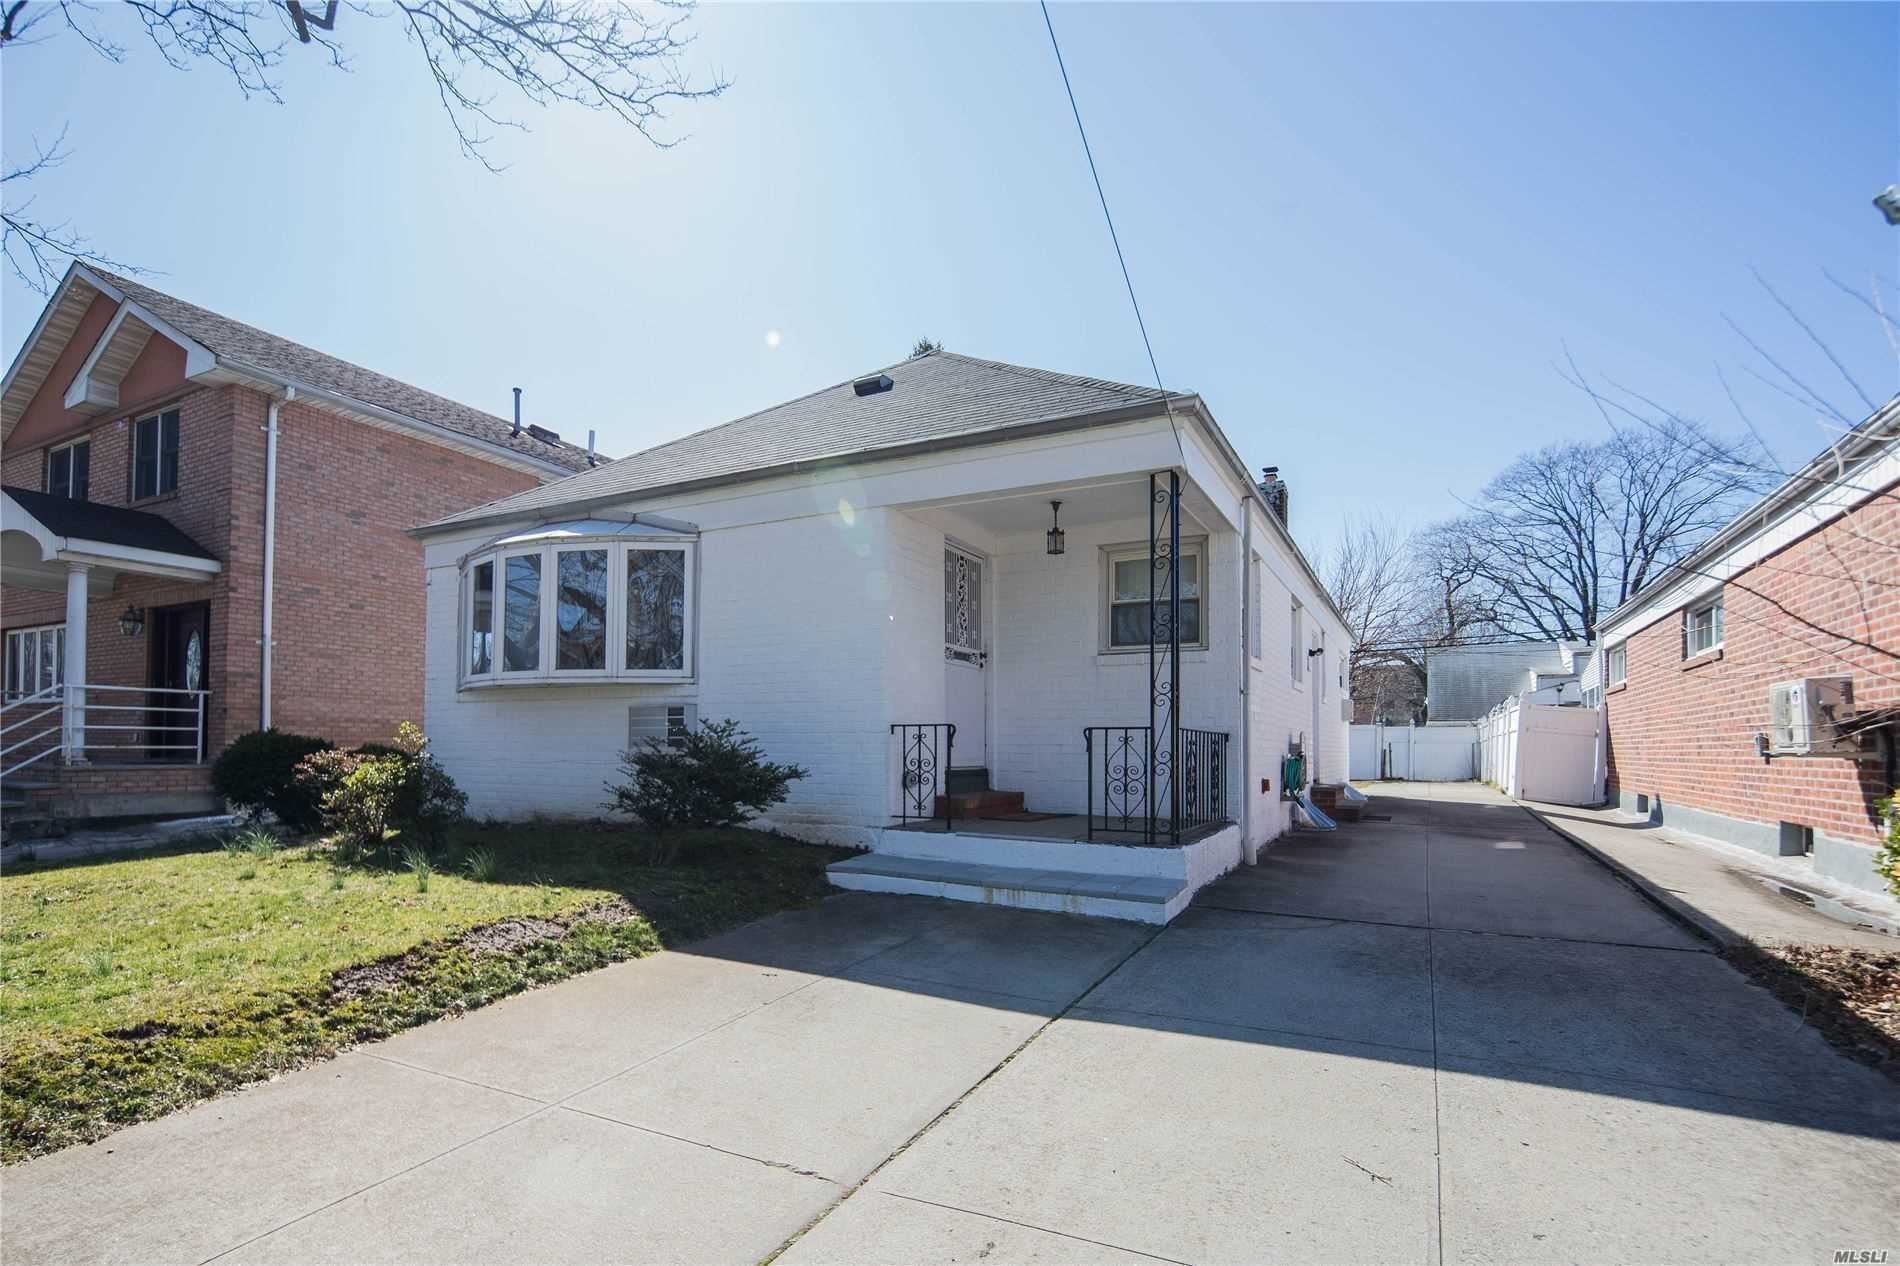 53-12 Clearview Expressway, Bayside, NY 11364 - MLS#: 3231504